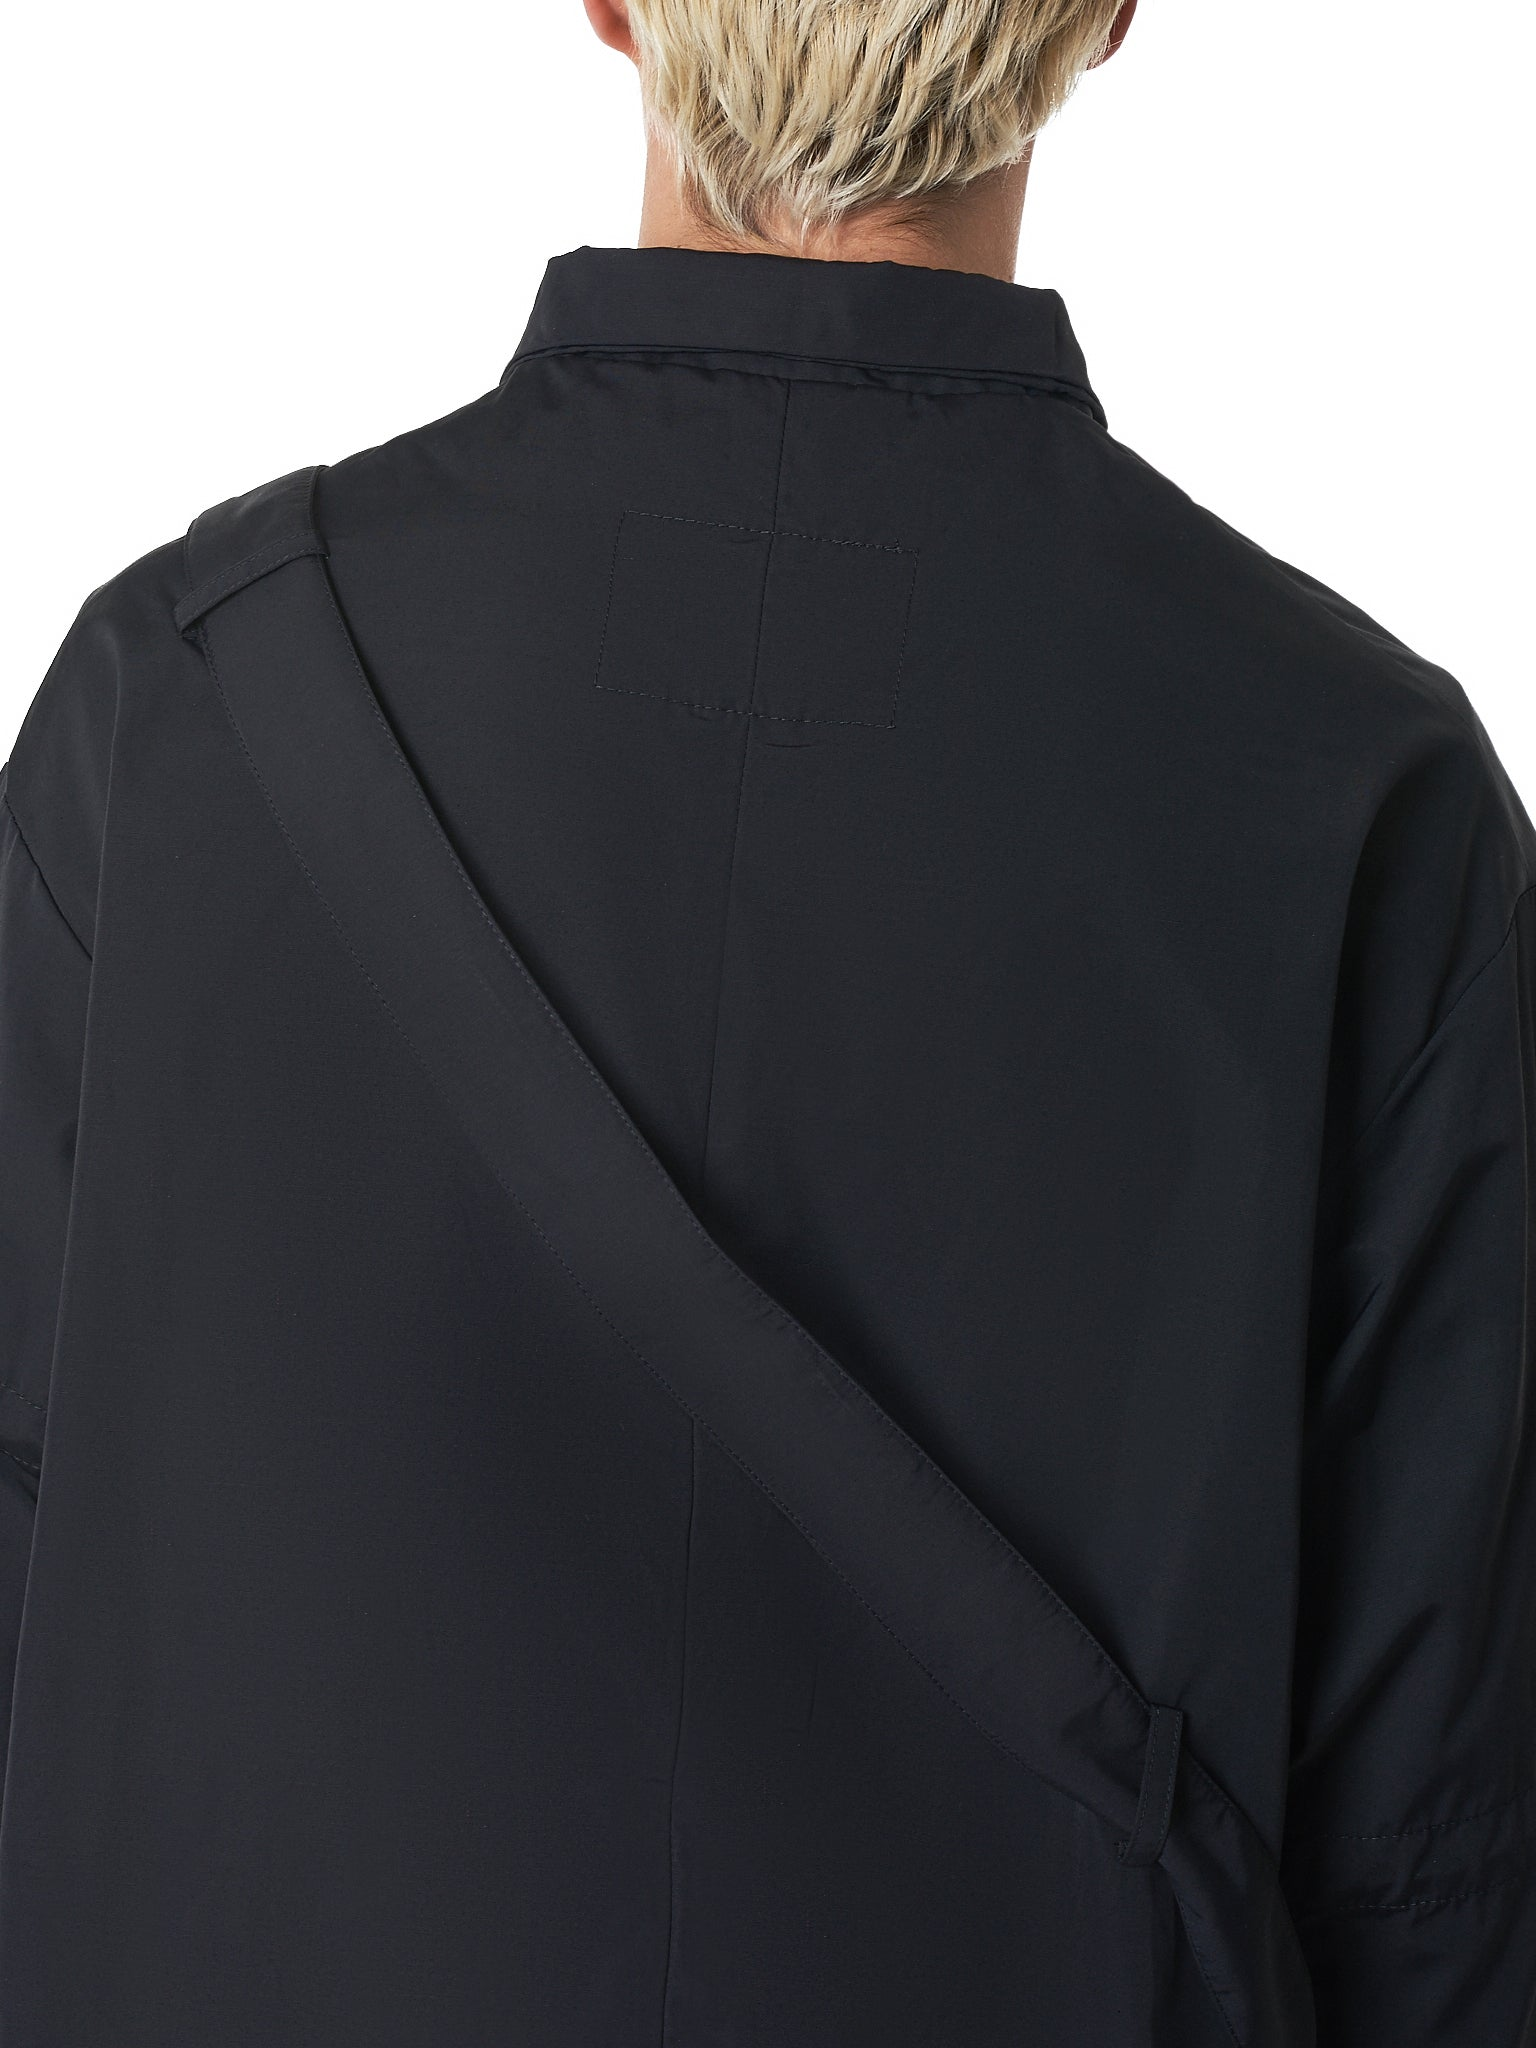 A Cold Wall Black Coat - Hlorenzo Detail 1